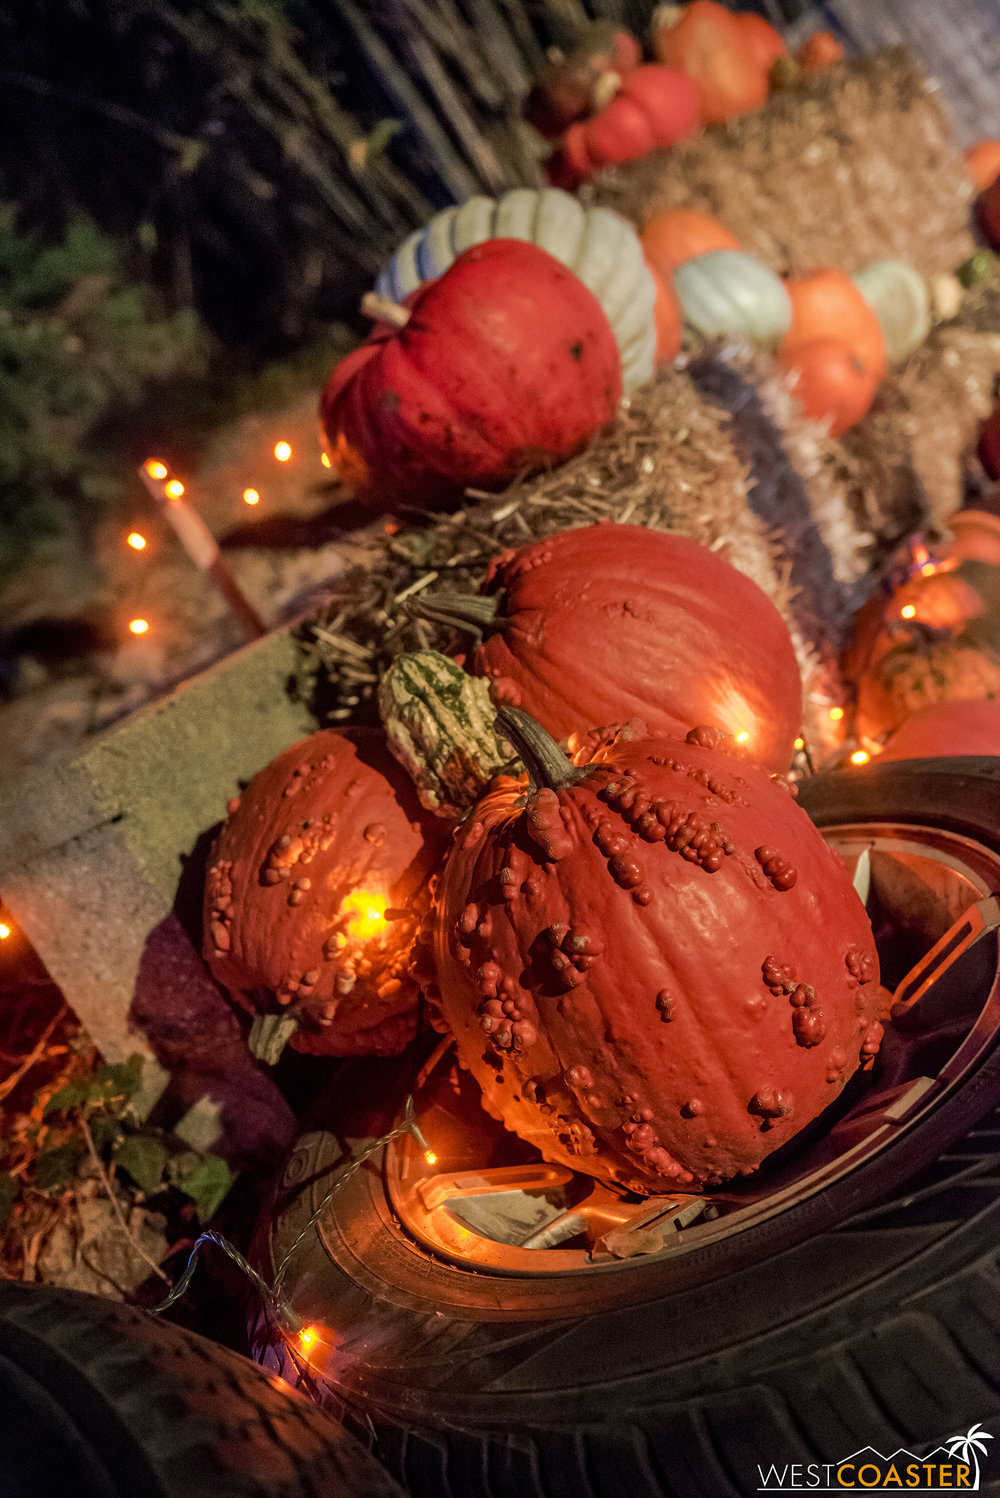 The other area with real pumpkins…